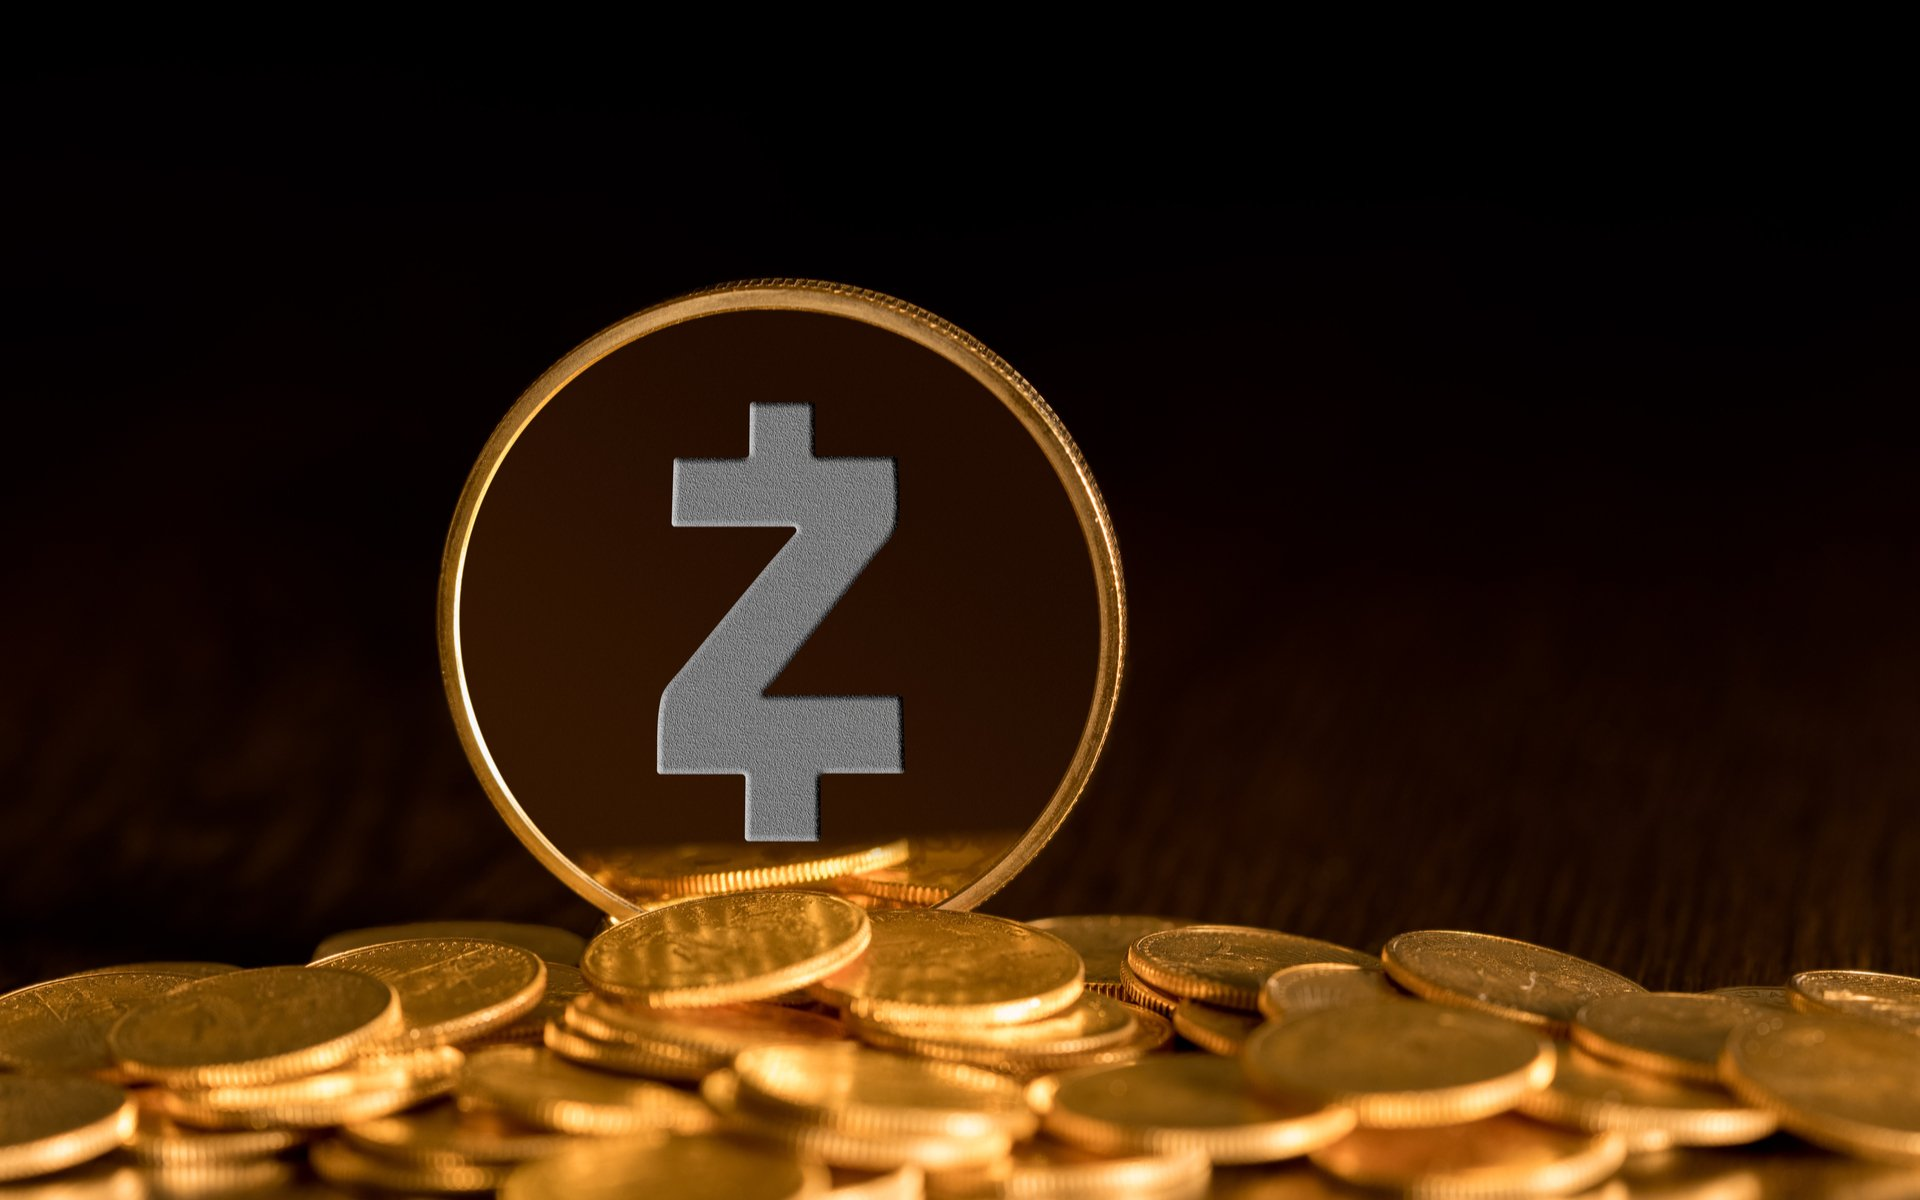 Zcash Trading Now Supported by Evolve Markets